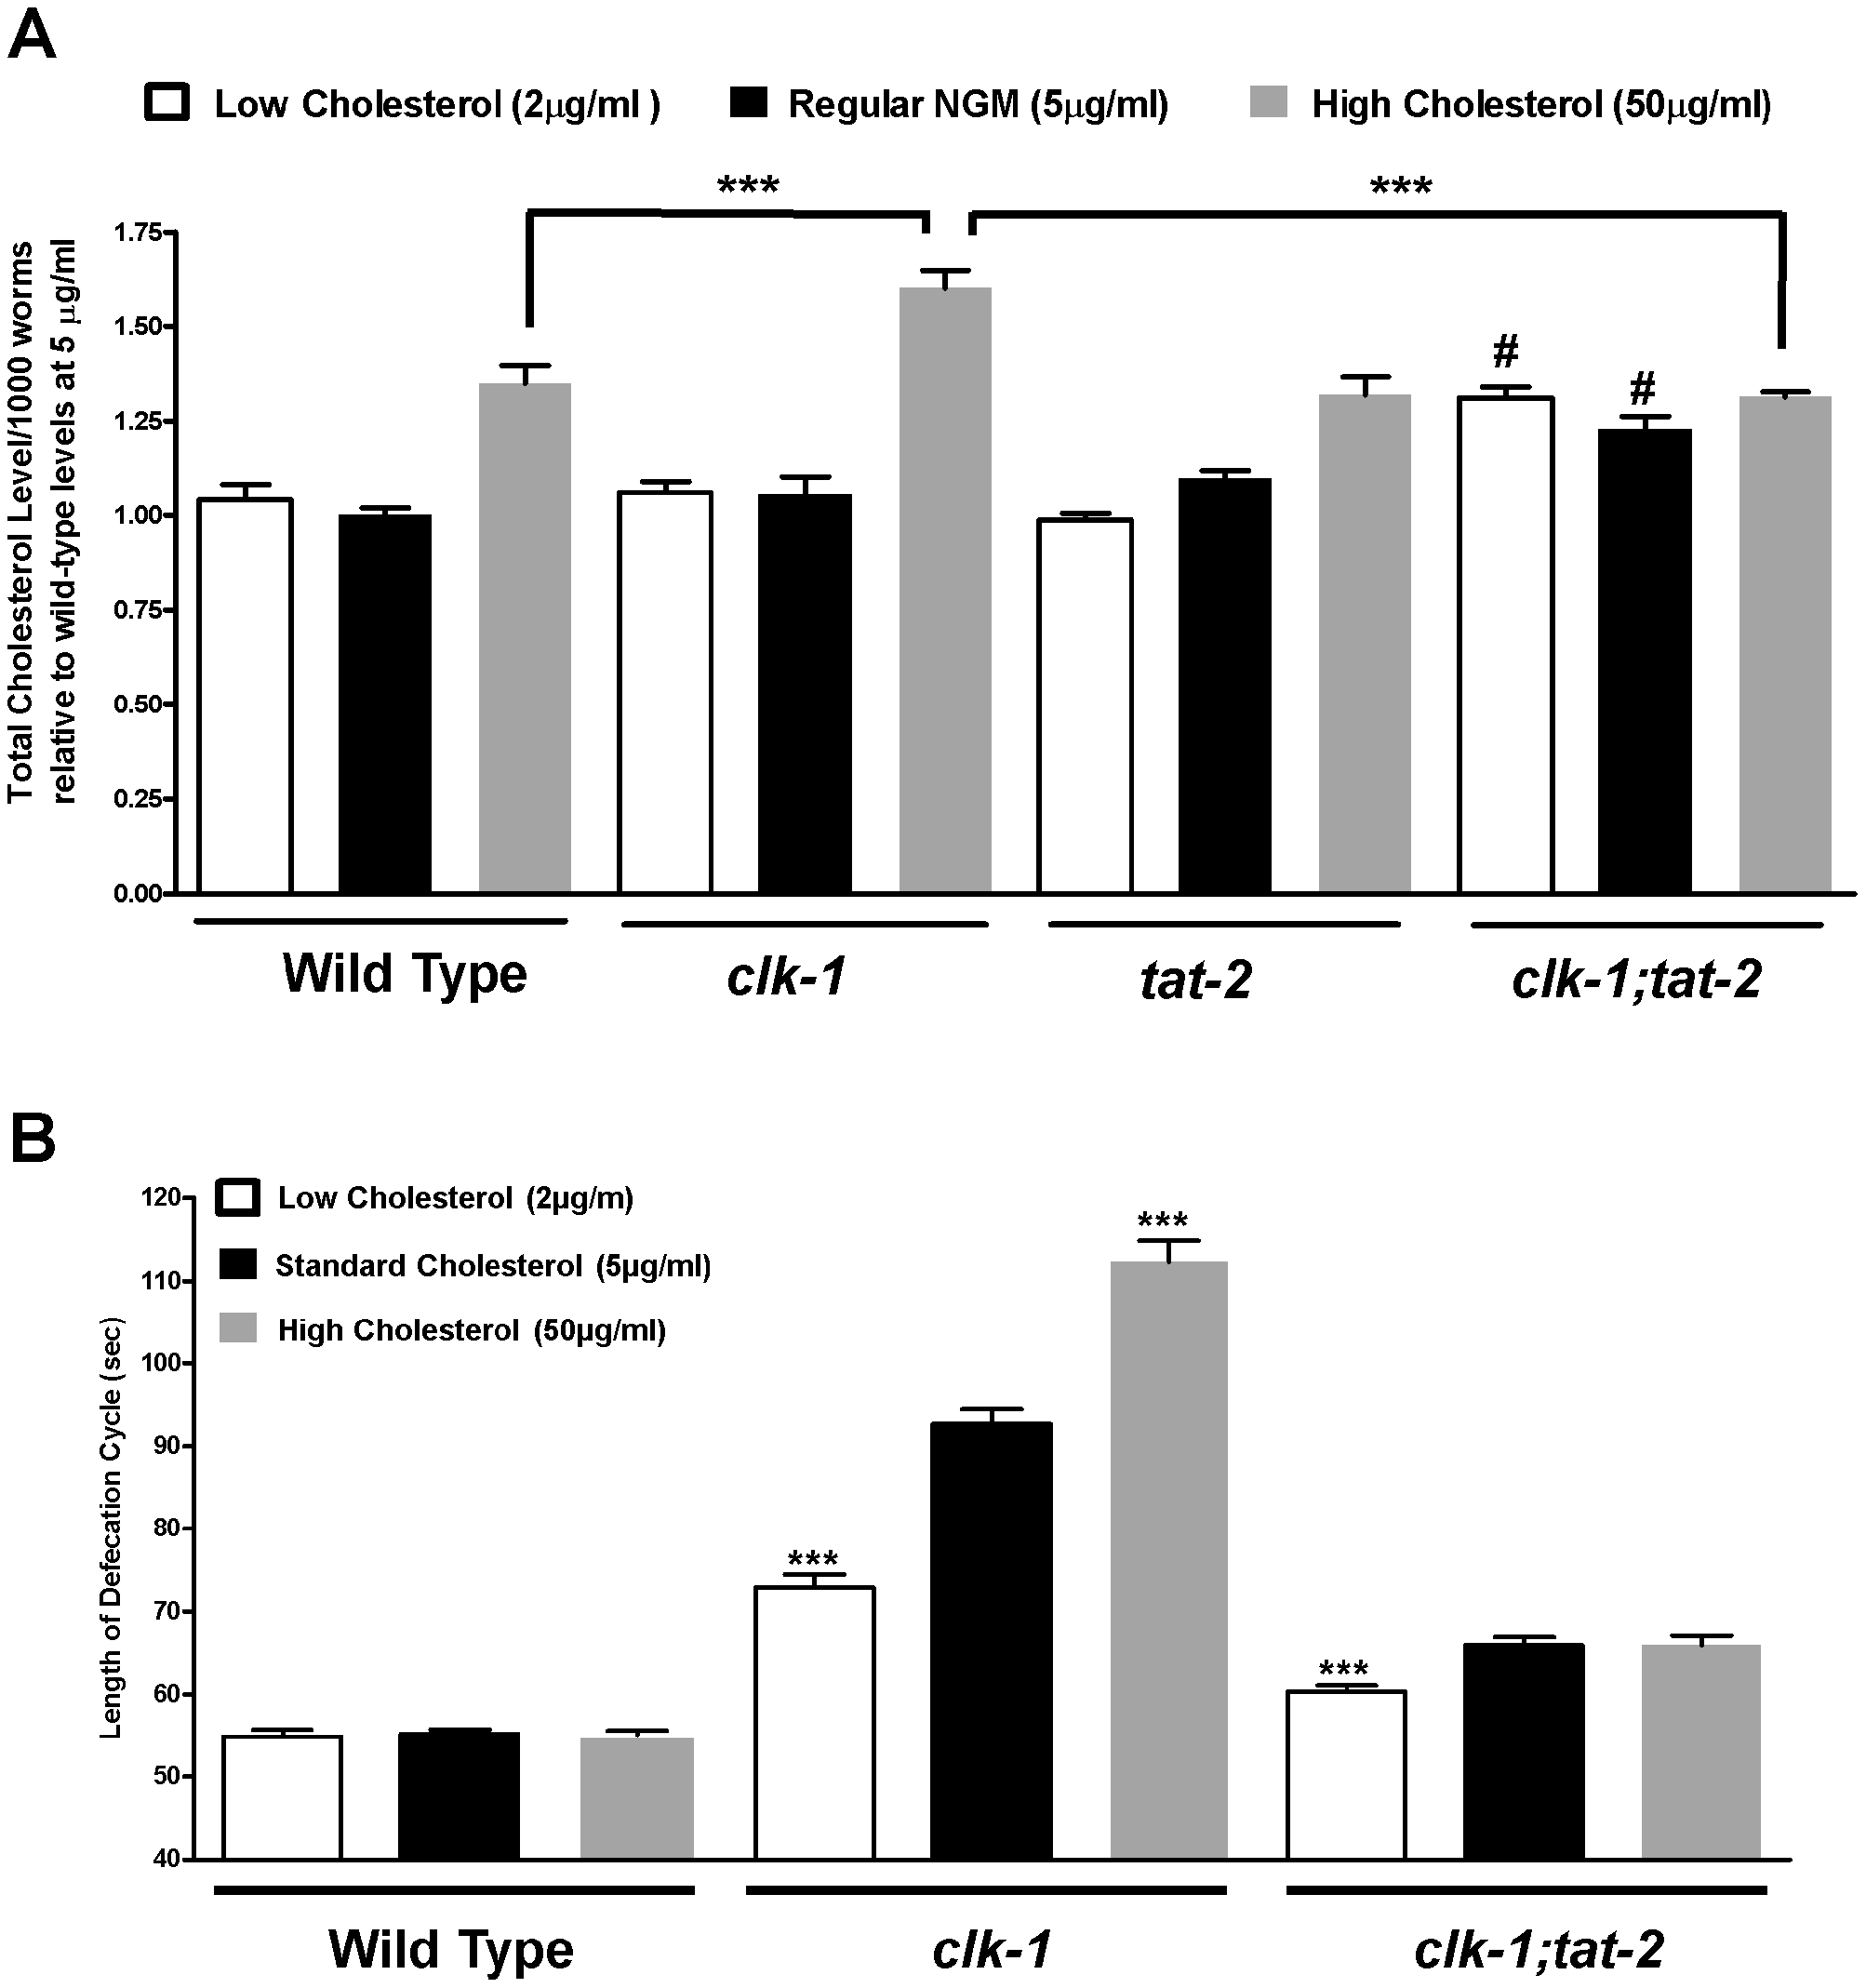 The effect of different levels of cholesterol supplementation on mutant genotypes.